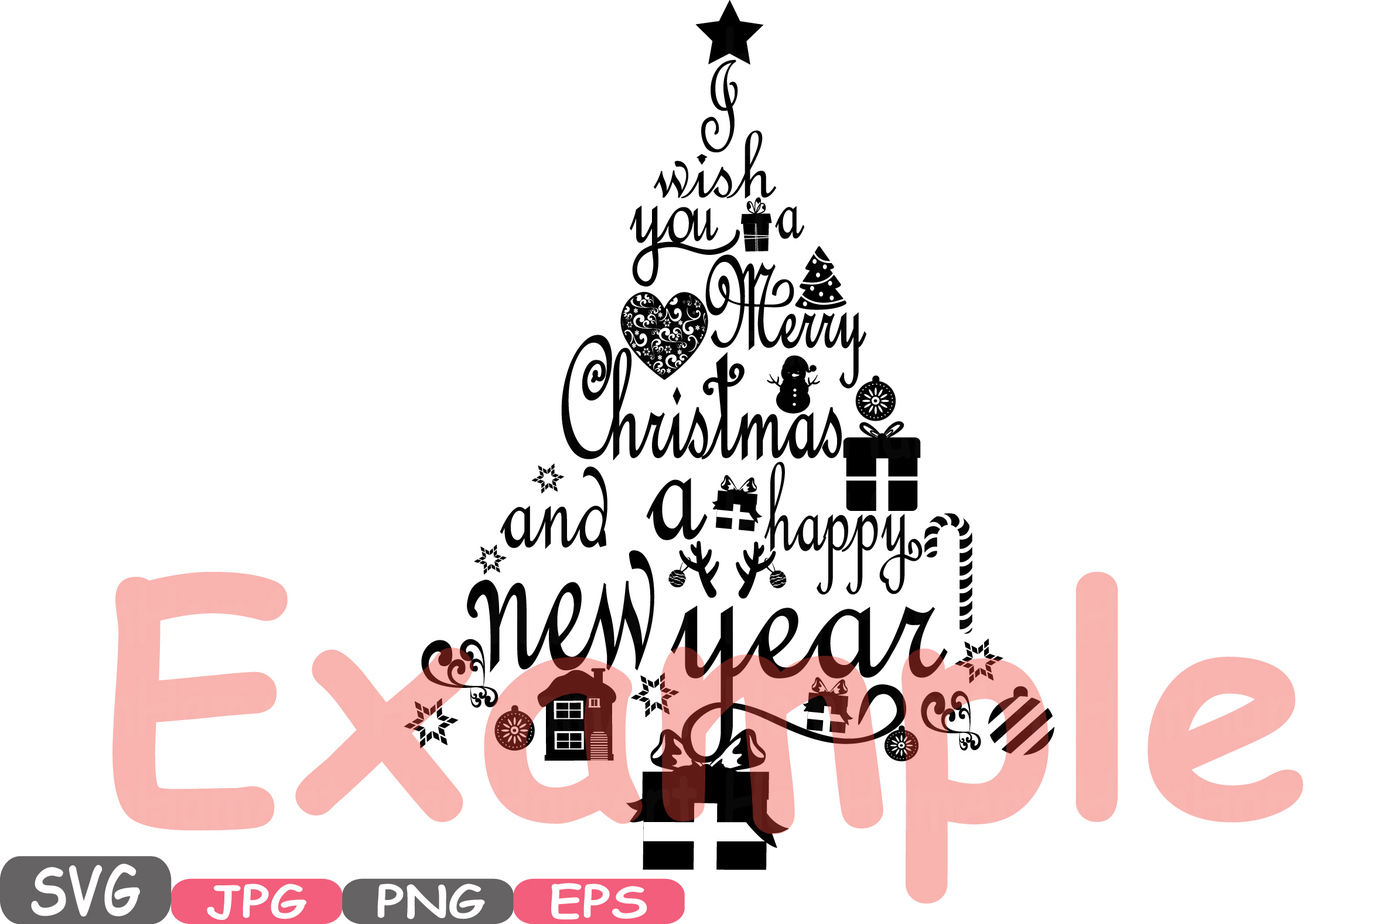 The Best New Year Tree Clipart